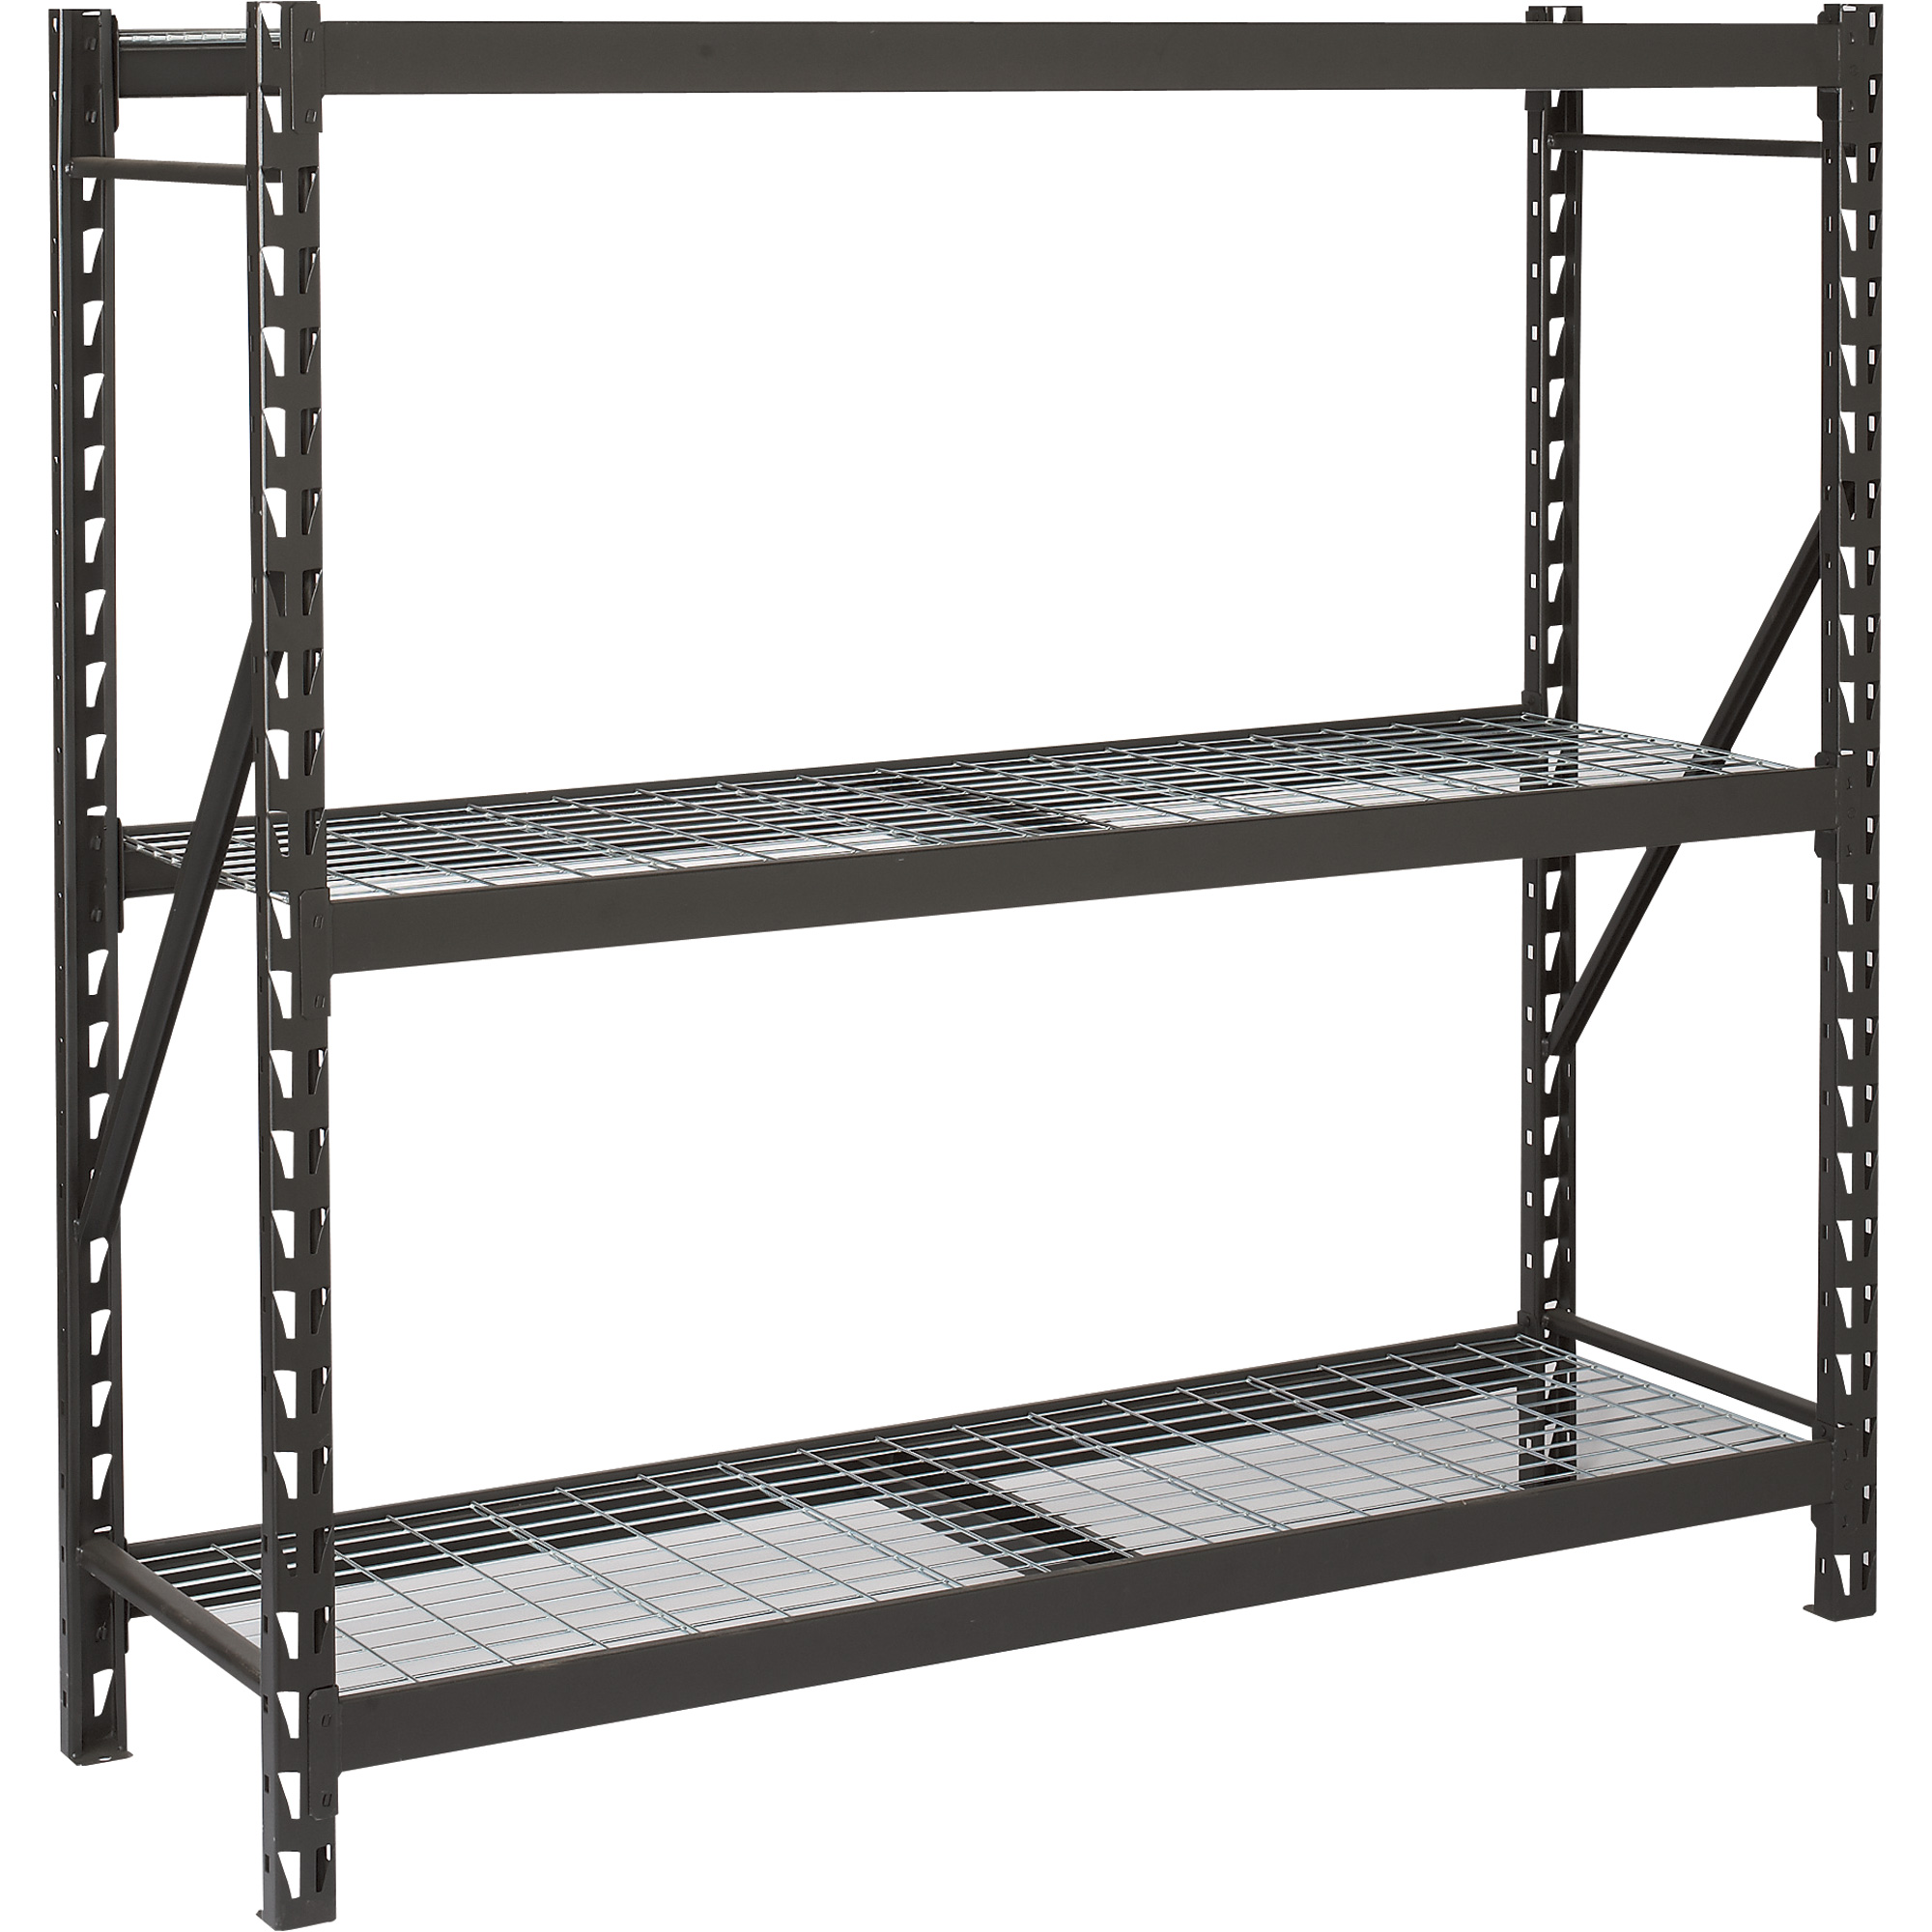 Awesome Black Edsal Shelving In Triple Tier Shelf Made Of Iron For Home Furniture Ideas